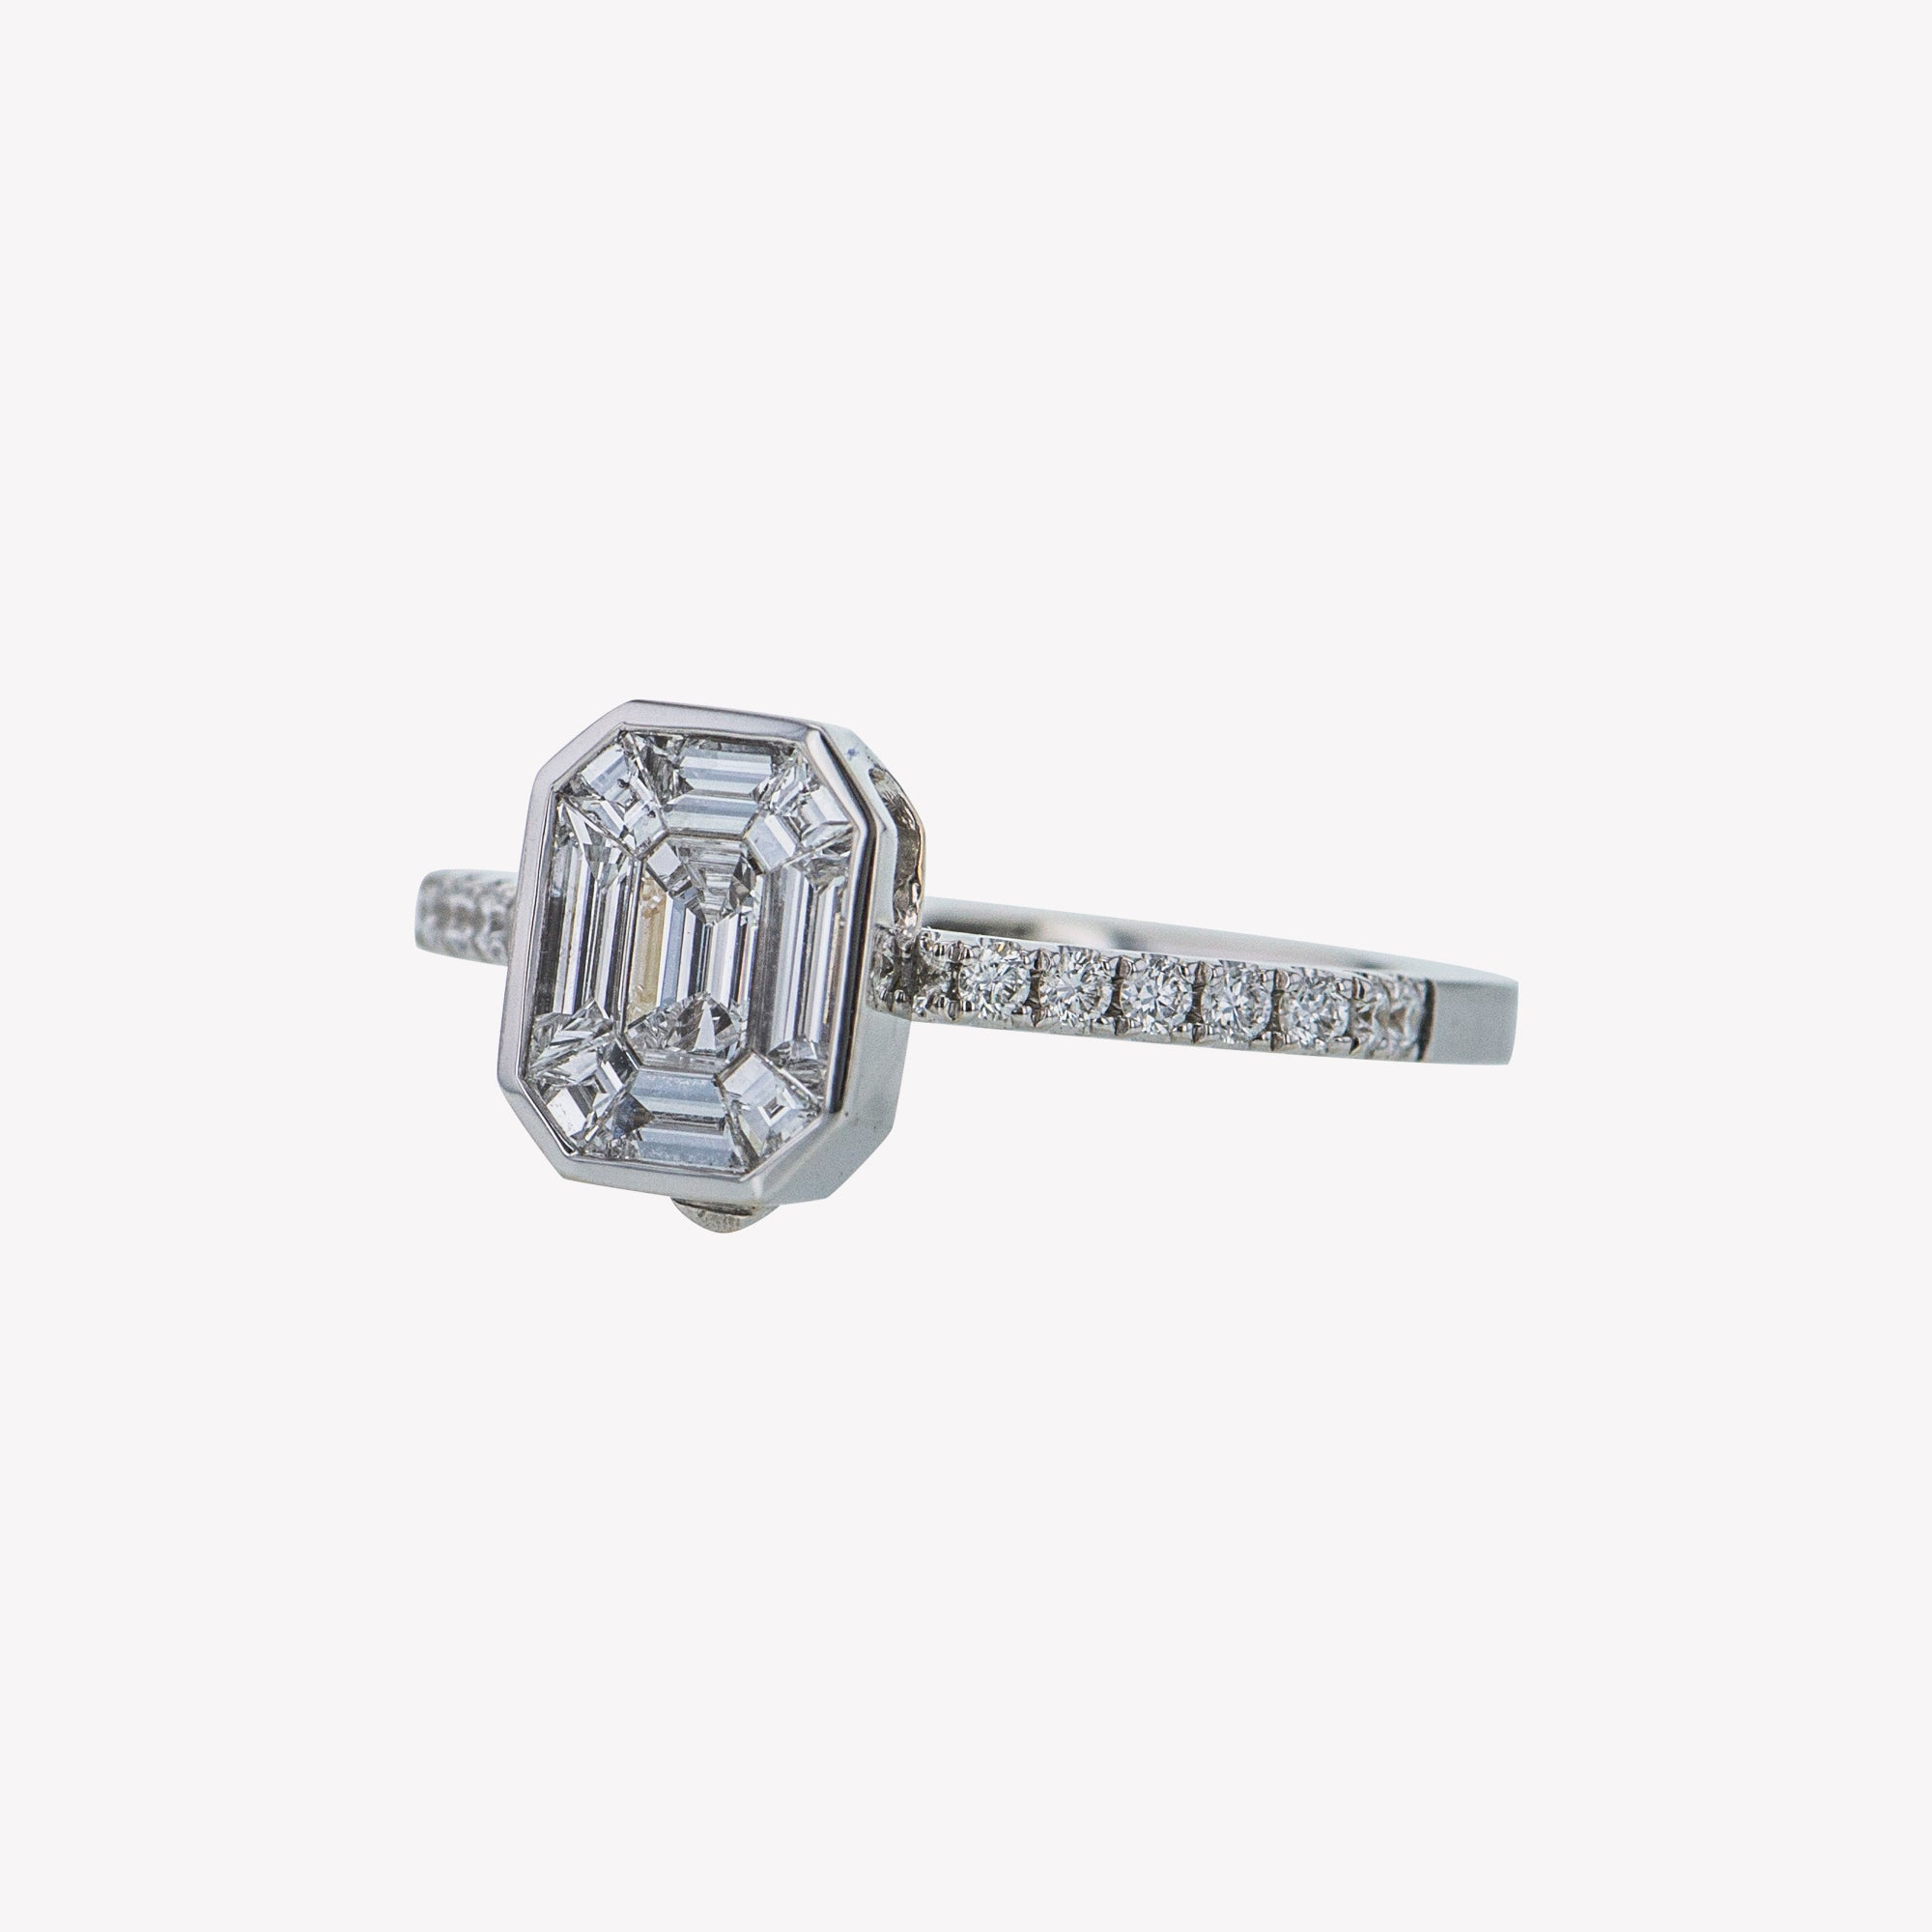 Detachable White Gold Emerald Head with Octa Diamond Band